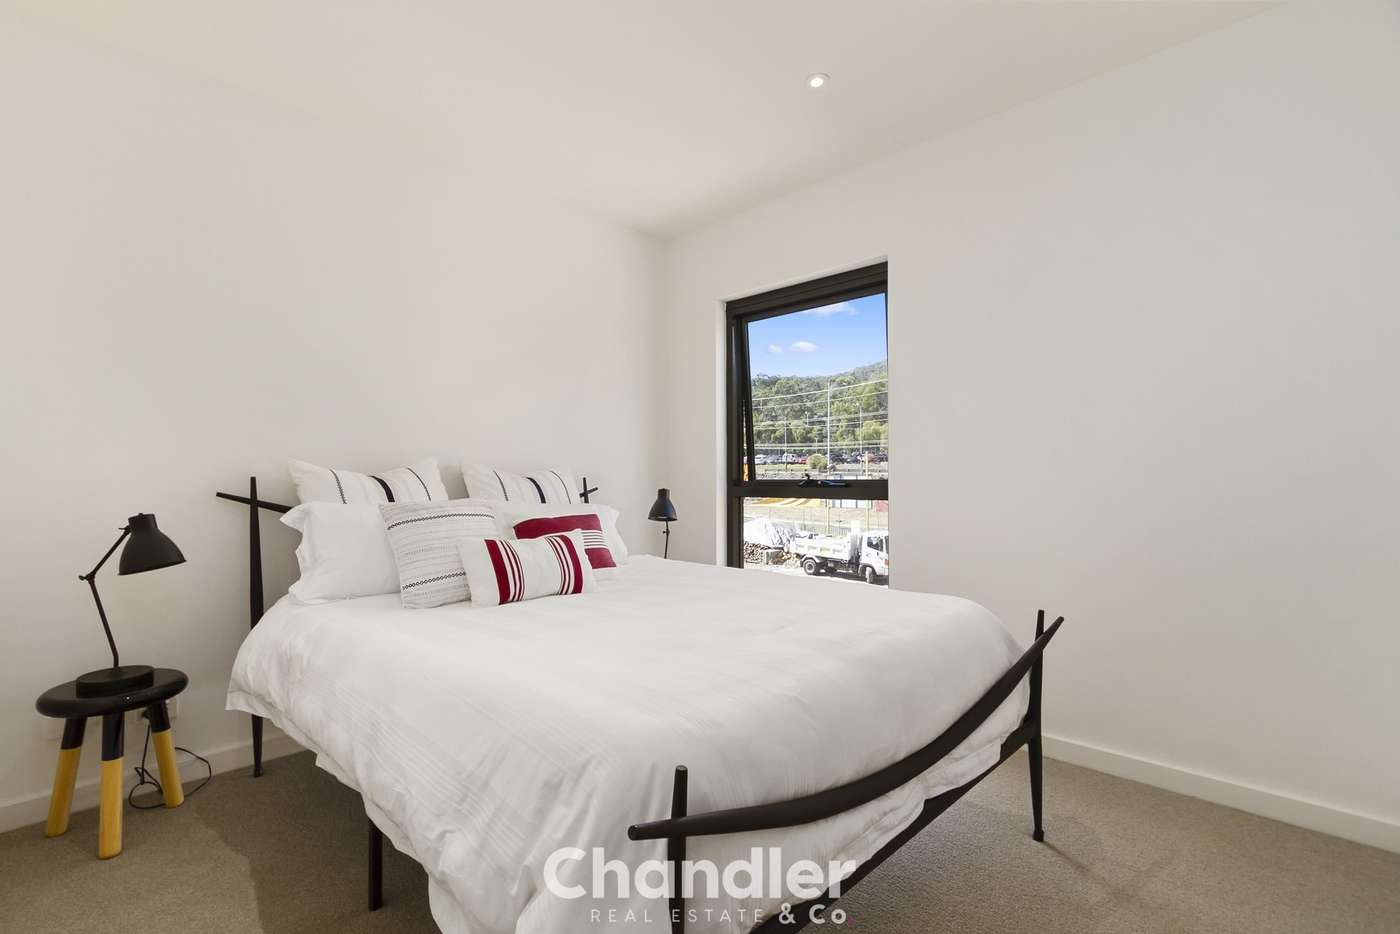 Fifth view of Homely apartment listing, 111/1172 Burwood Highway, Upper Ferntree Gully VIC 3156